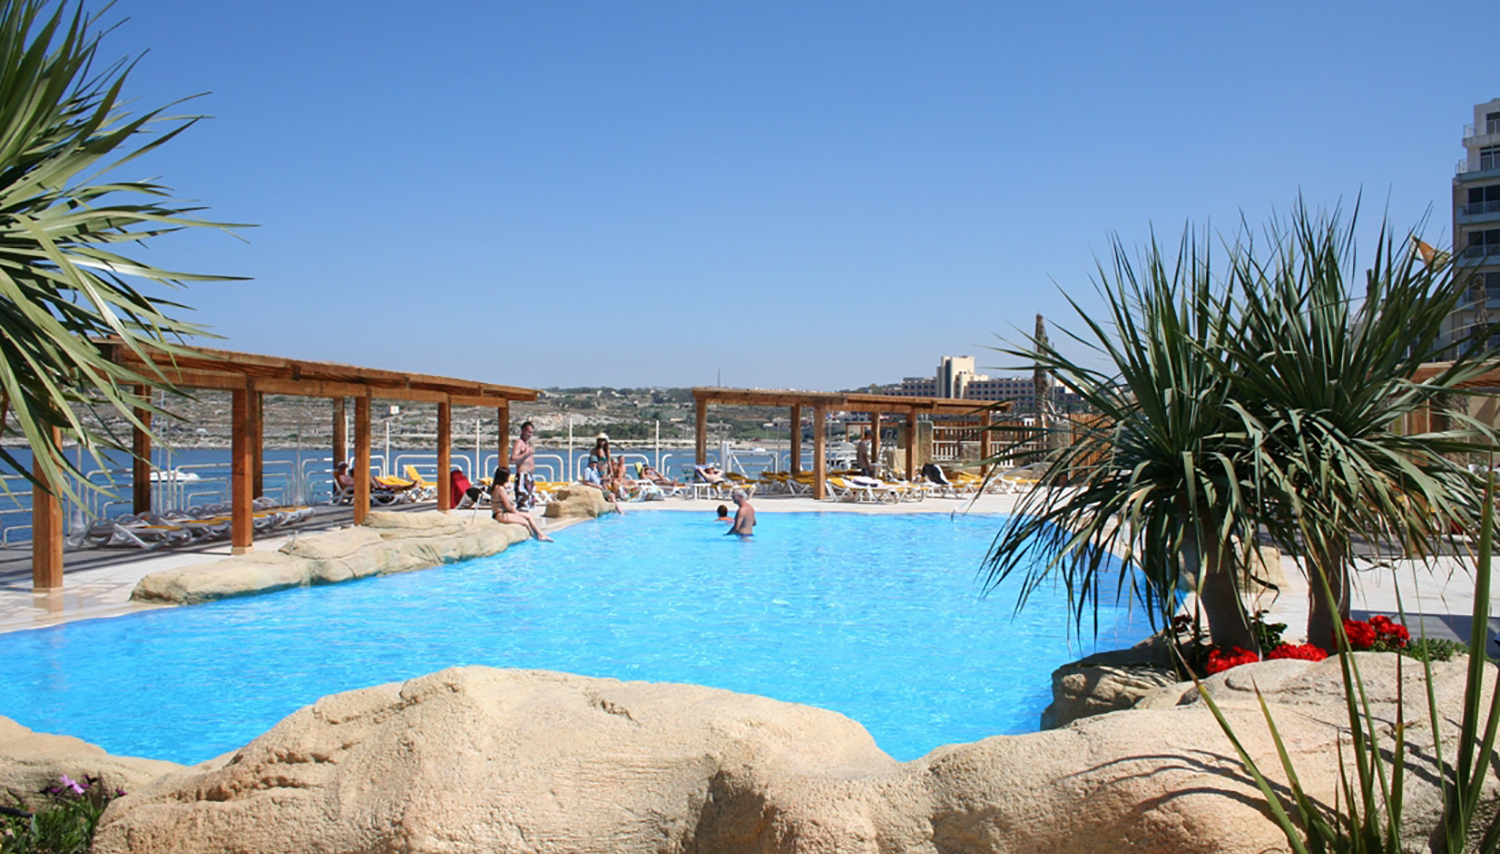 Sunny Coast Resort & Spa hotell (Valletta, Malta)